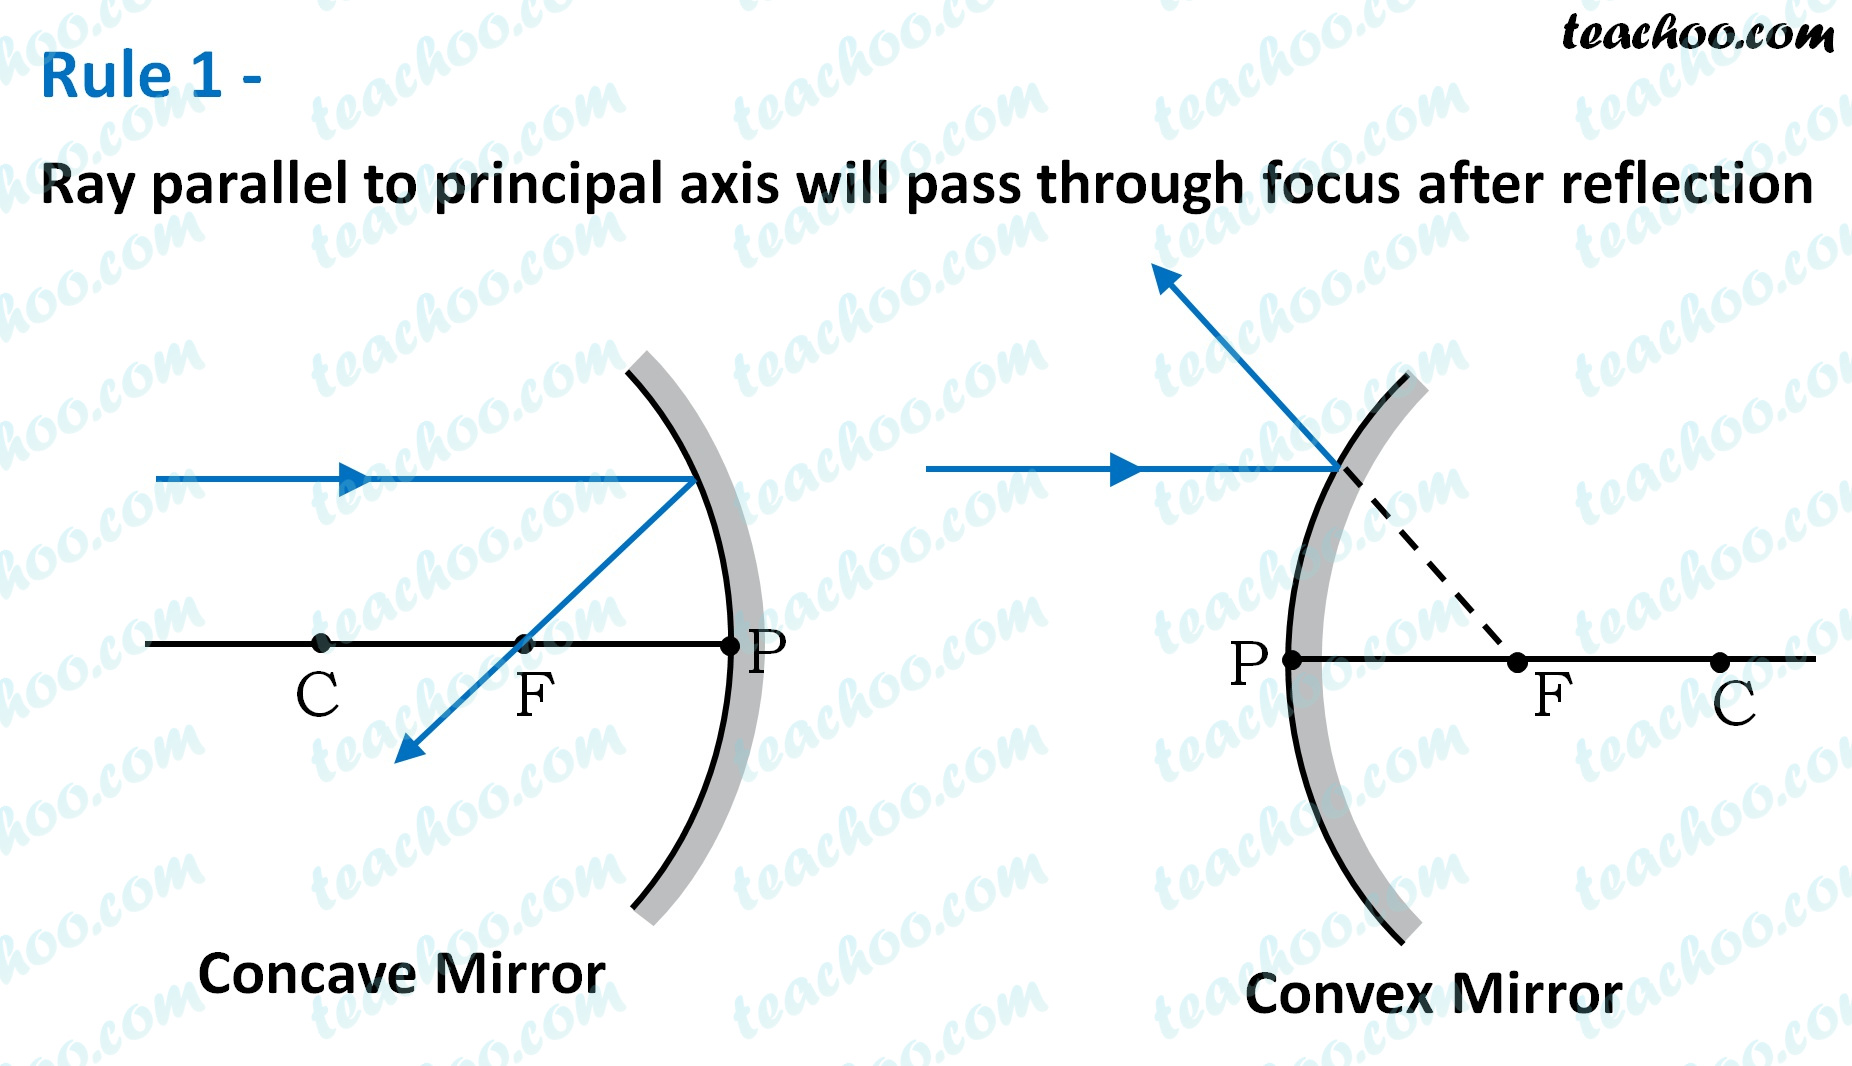 rule-1---ray-parallel-to-principal-axis-will-pass-through-focus---teachoo.jpg